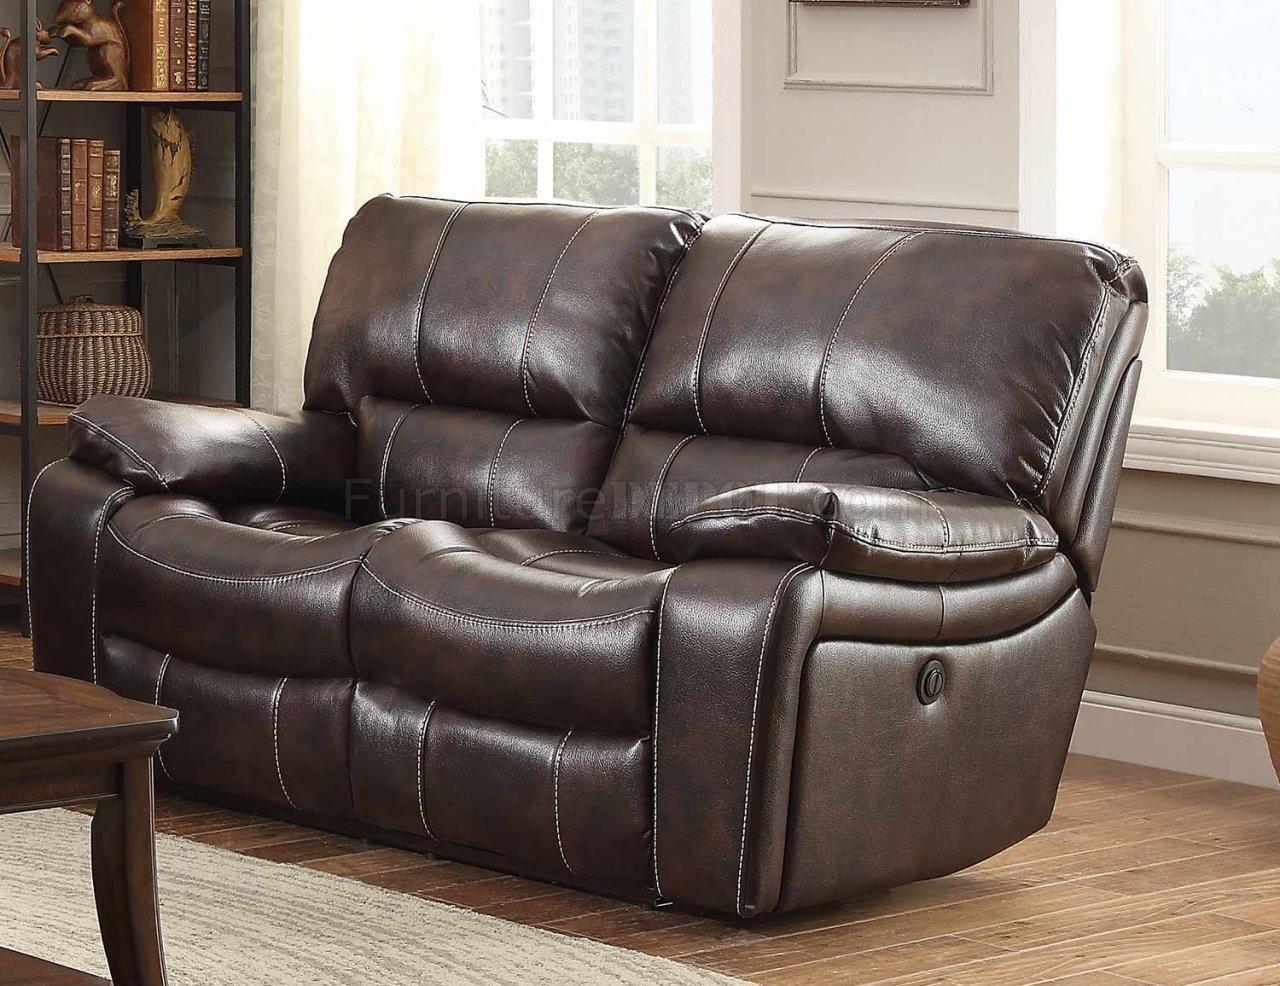 caruso leather 5 piece power motion sectional sofa repair sagging seat timkin 8435 by homelegance w options